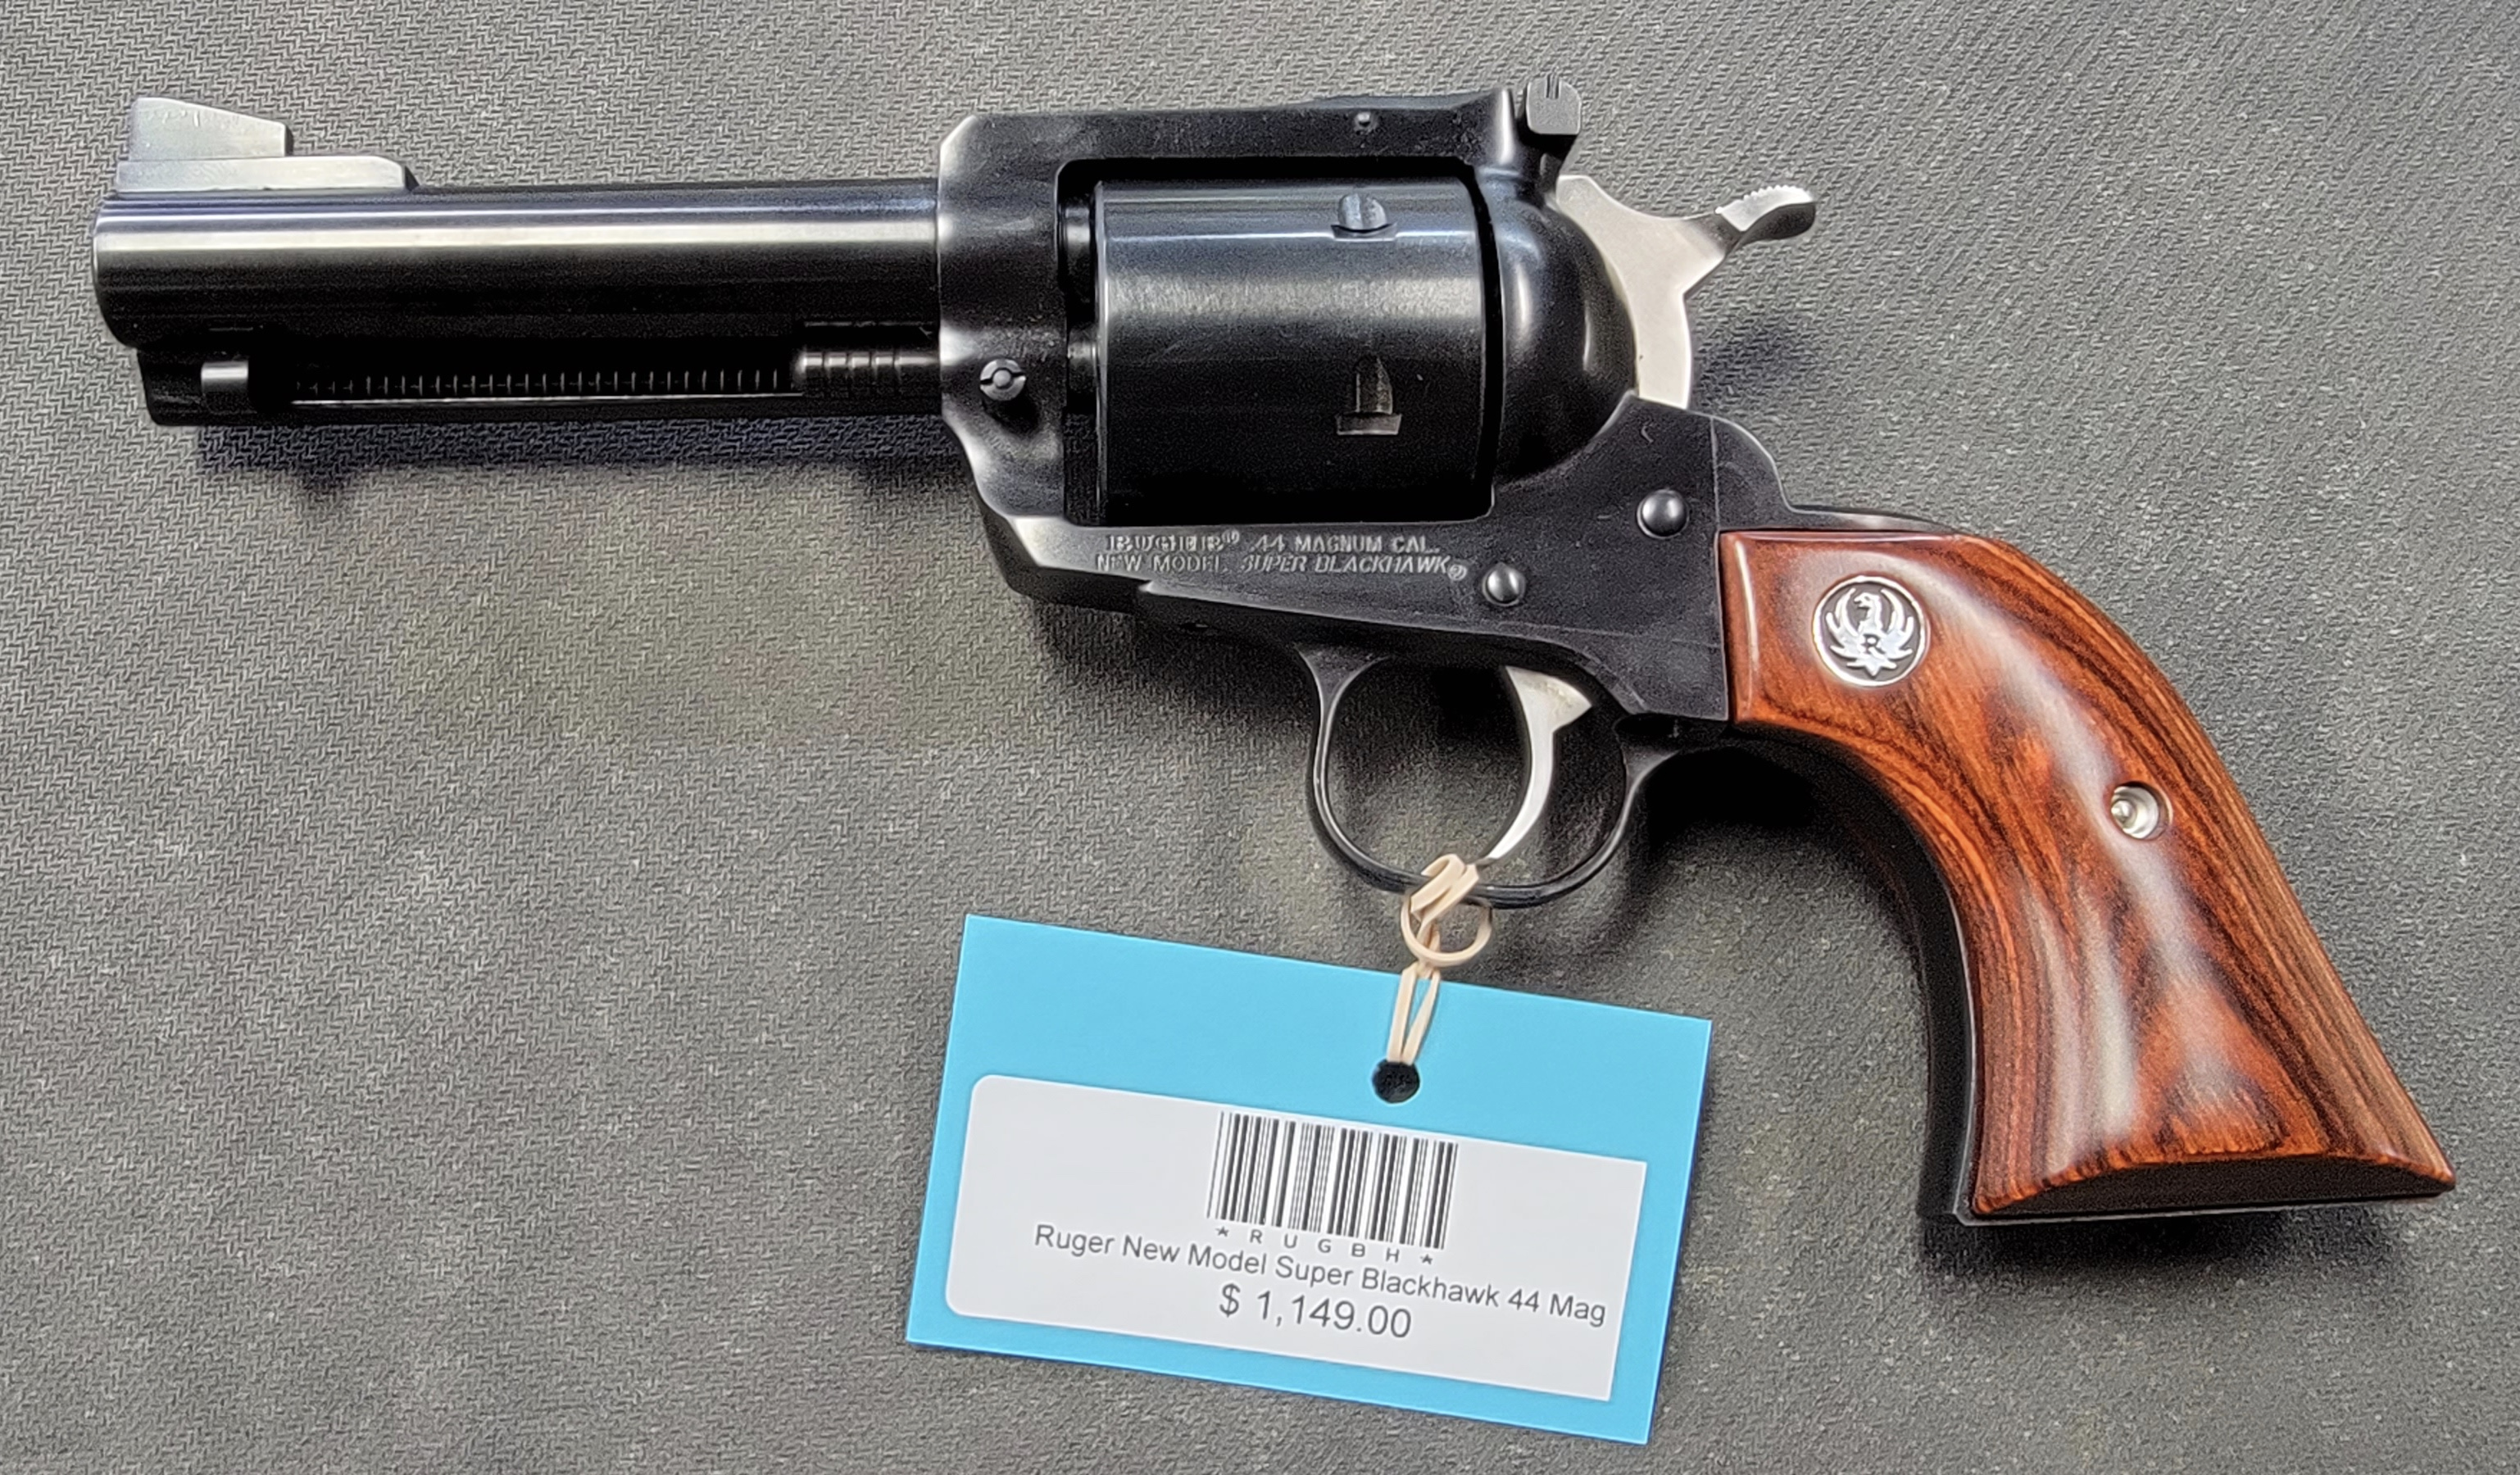 Ruger New Model Super Blackhawk .44 Mag (used)